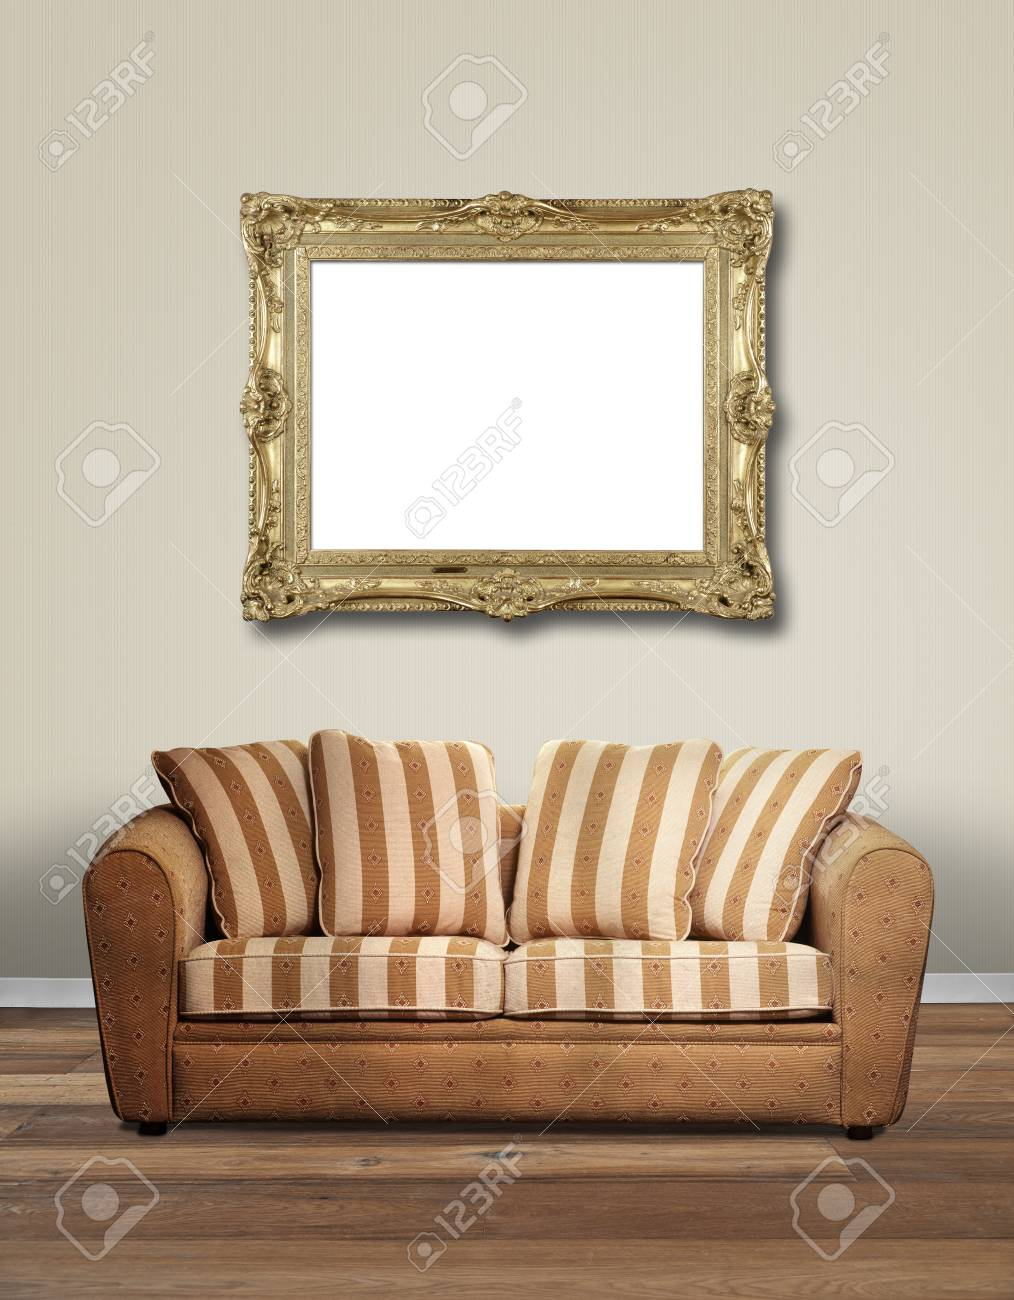 db151f644e2 Modern interior with sofa and old golden vintage frame. Souvenir in frame  at the wall